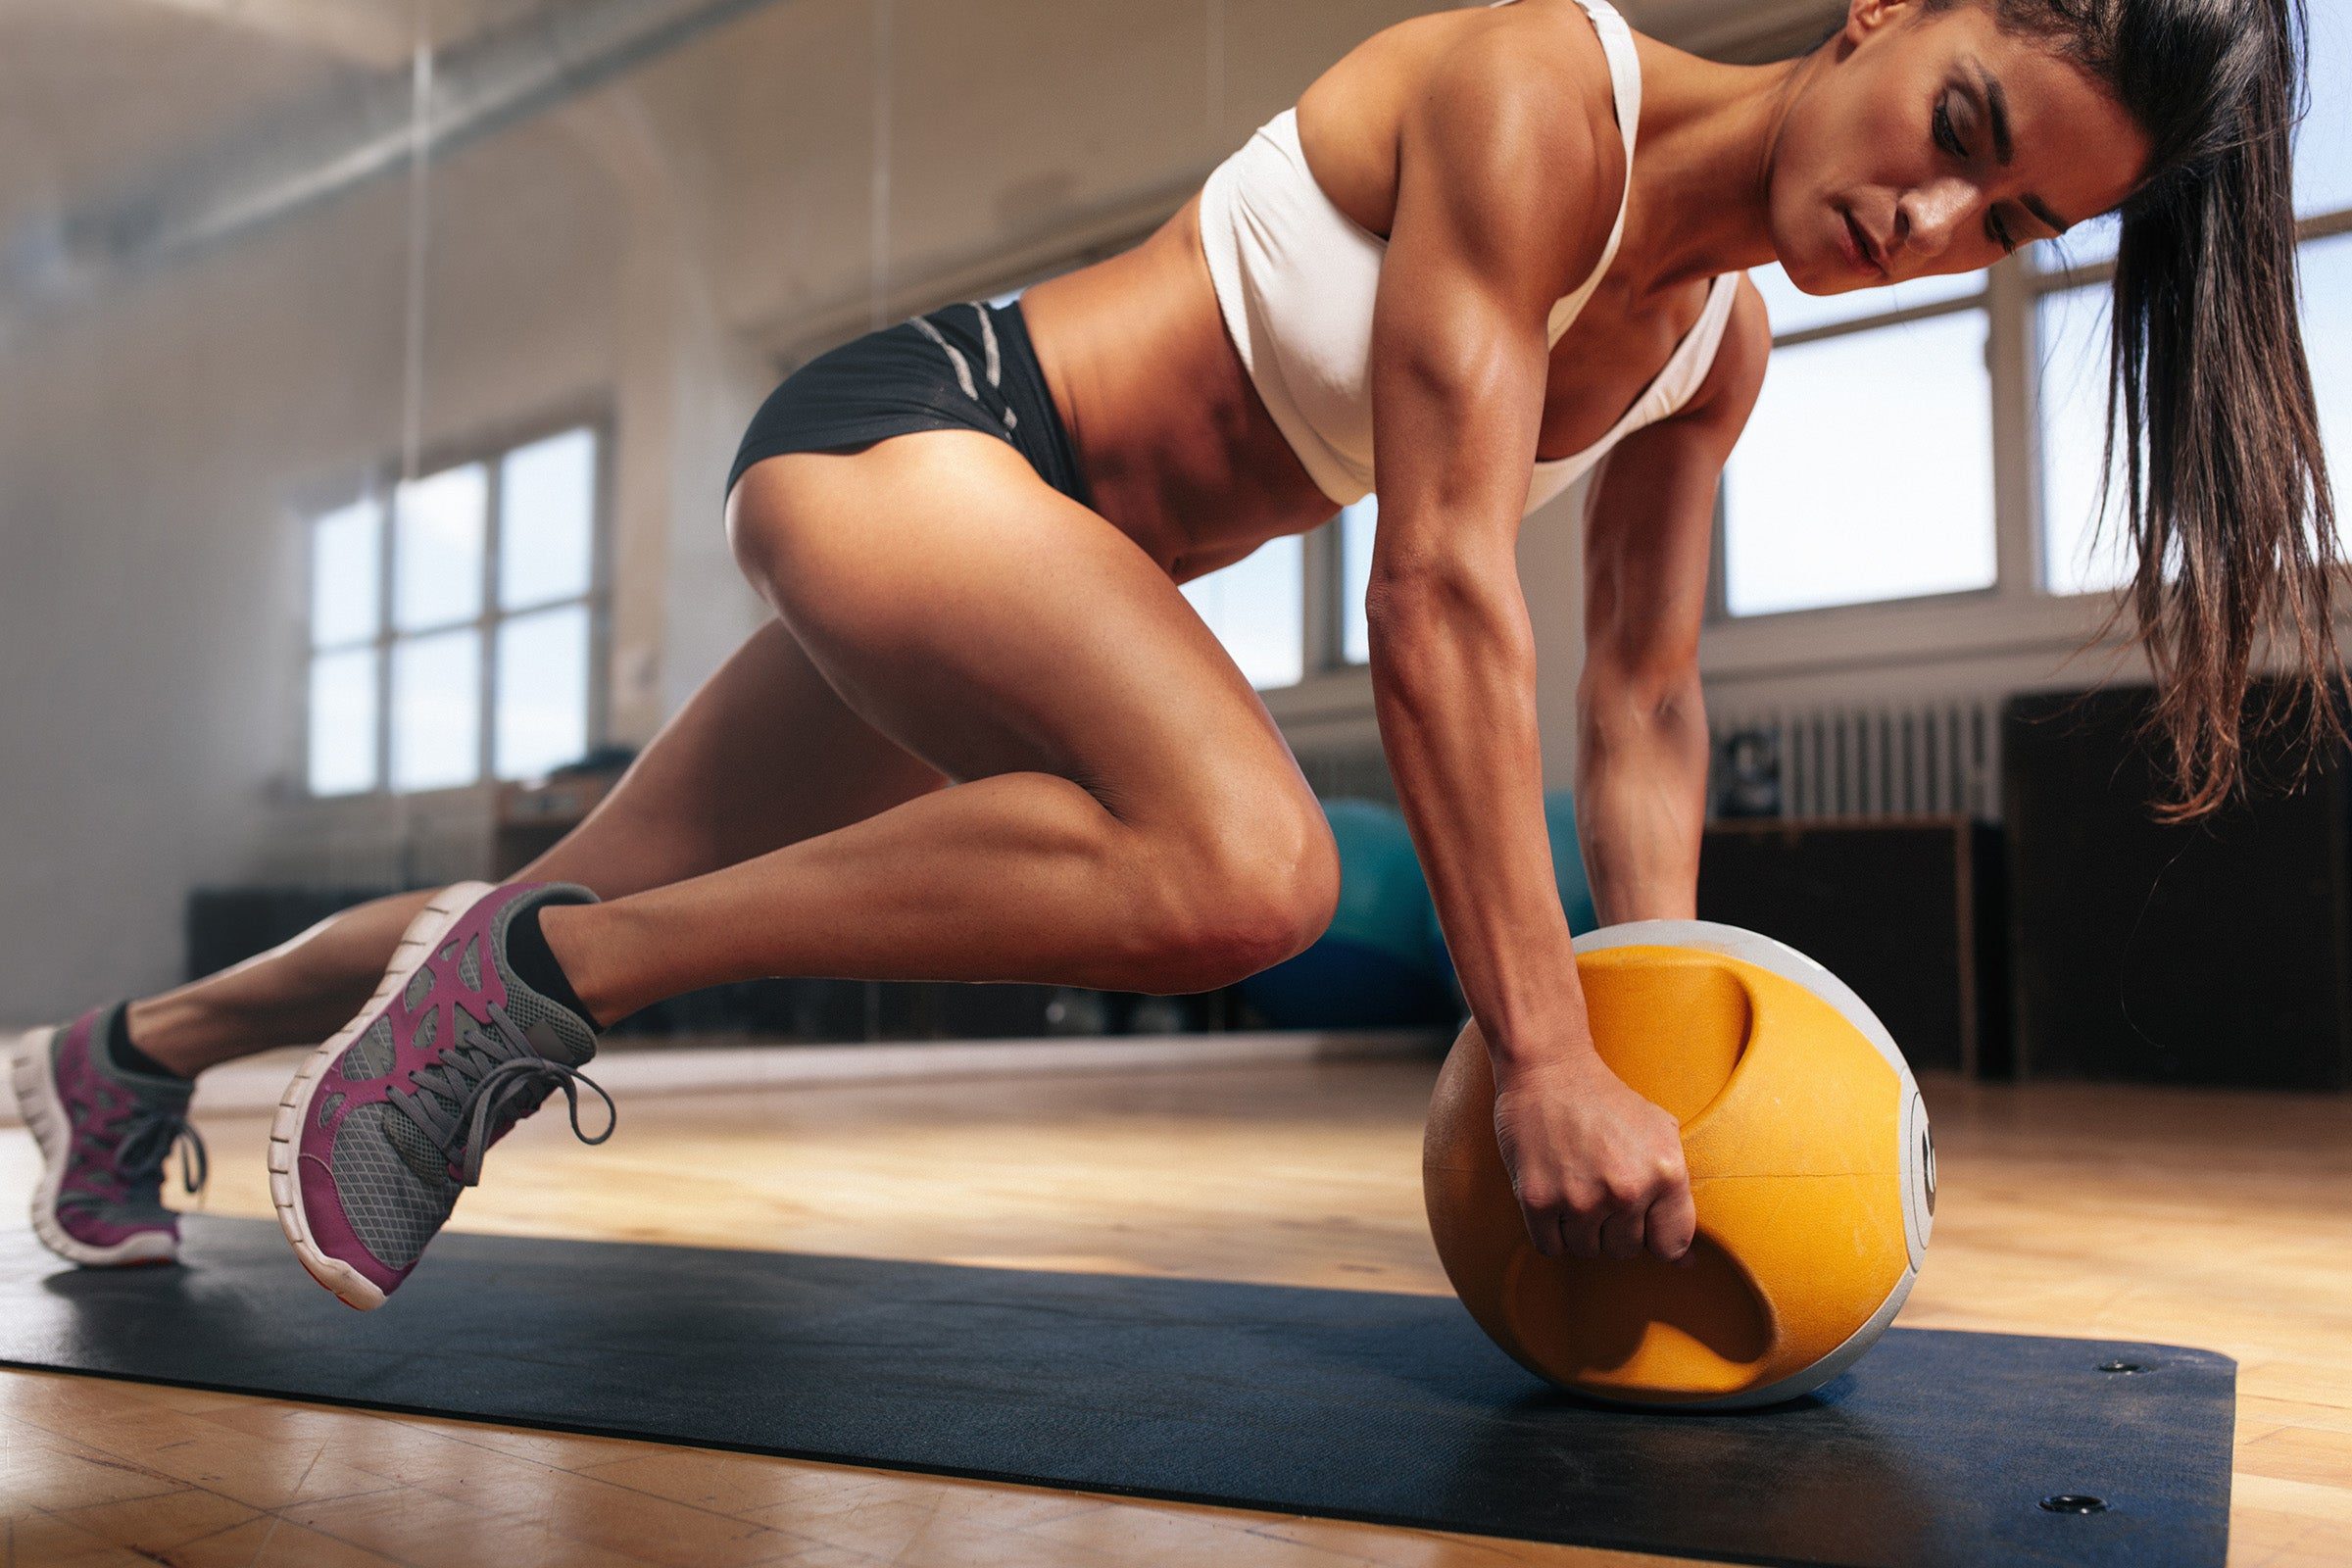 Strength training with a proper diet slows our muscle decline and can even rebuild lost muscle tissue.